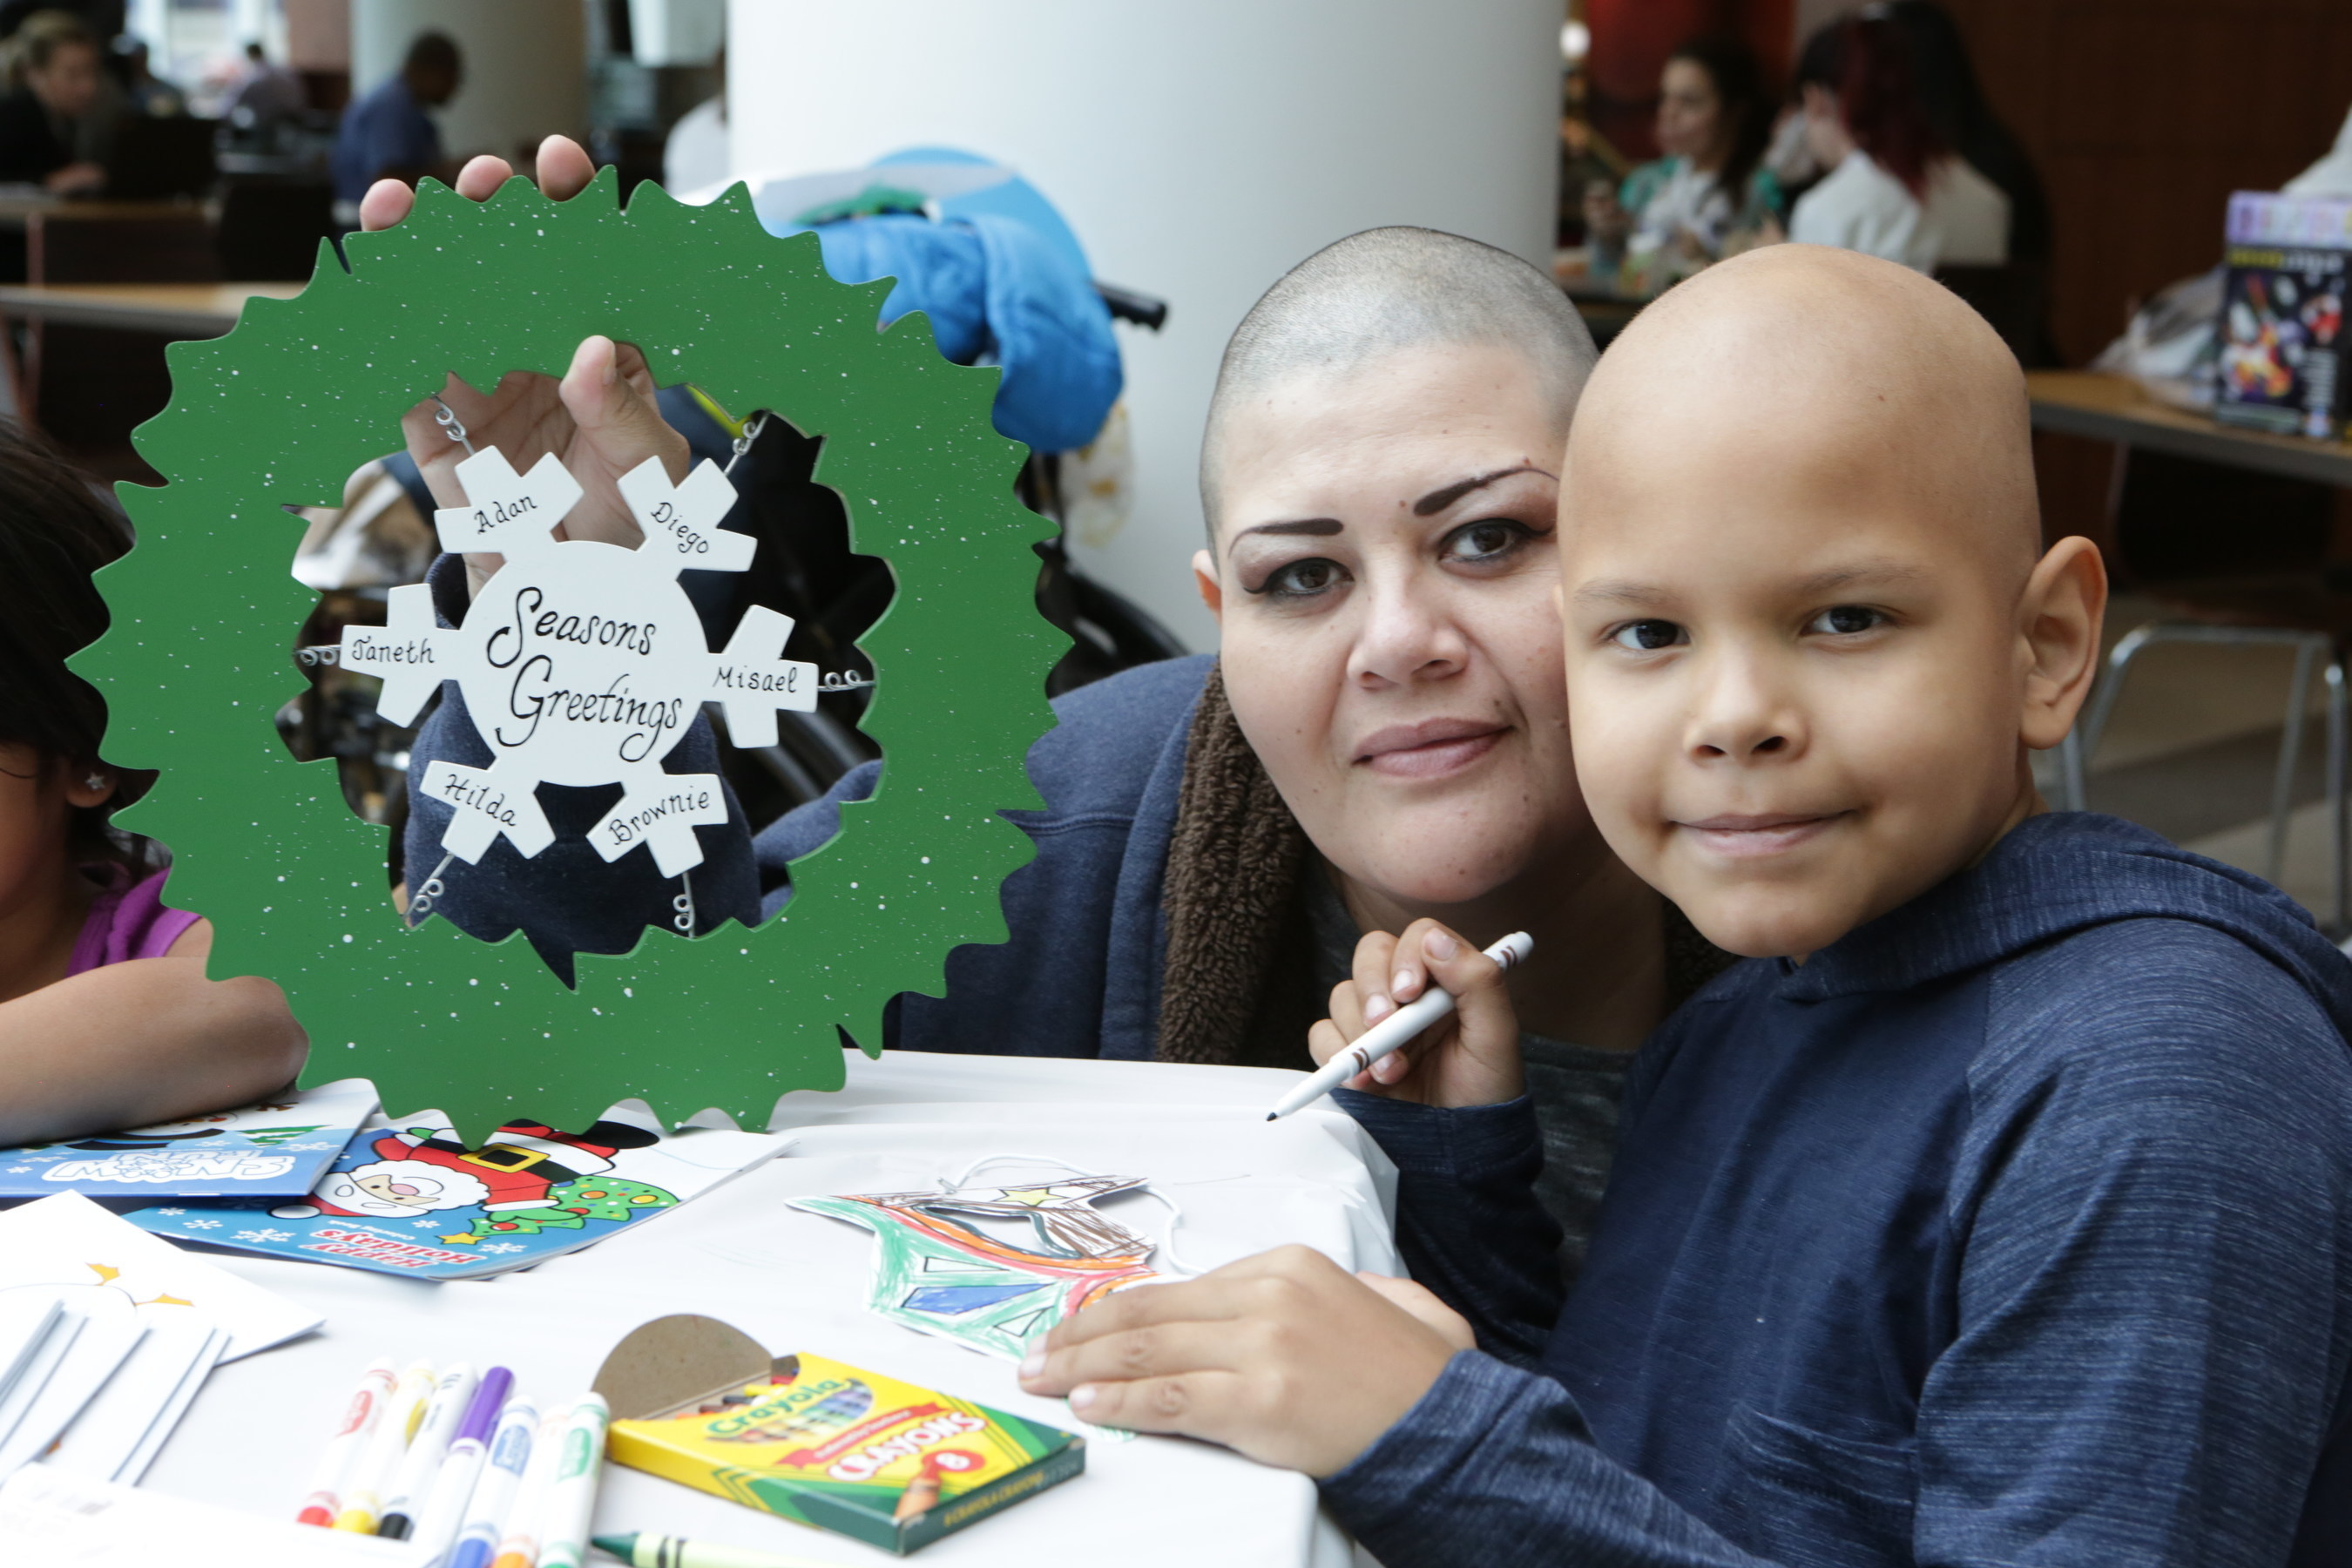 Personalized Gifting Brand, Personal Creations, Brings Holiday Cheer Early To Ann & Robert H. Lurie Children's Hospital Of Chicago